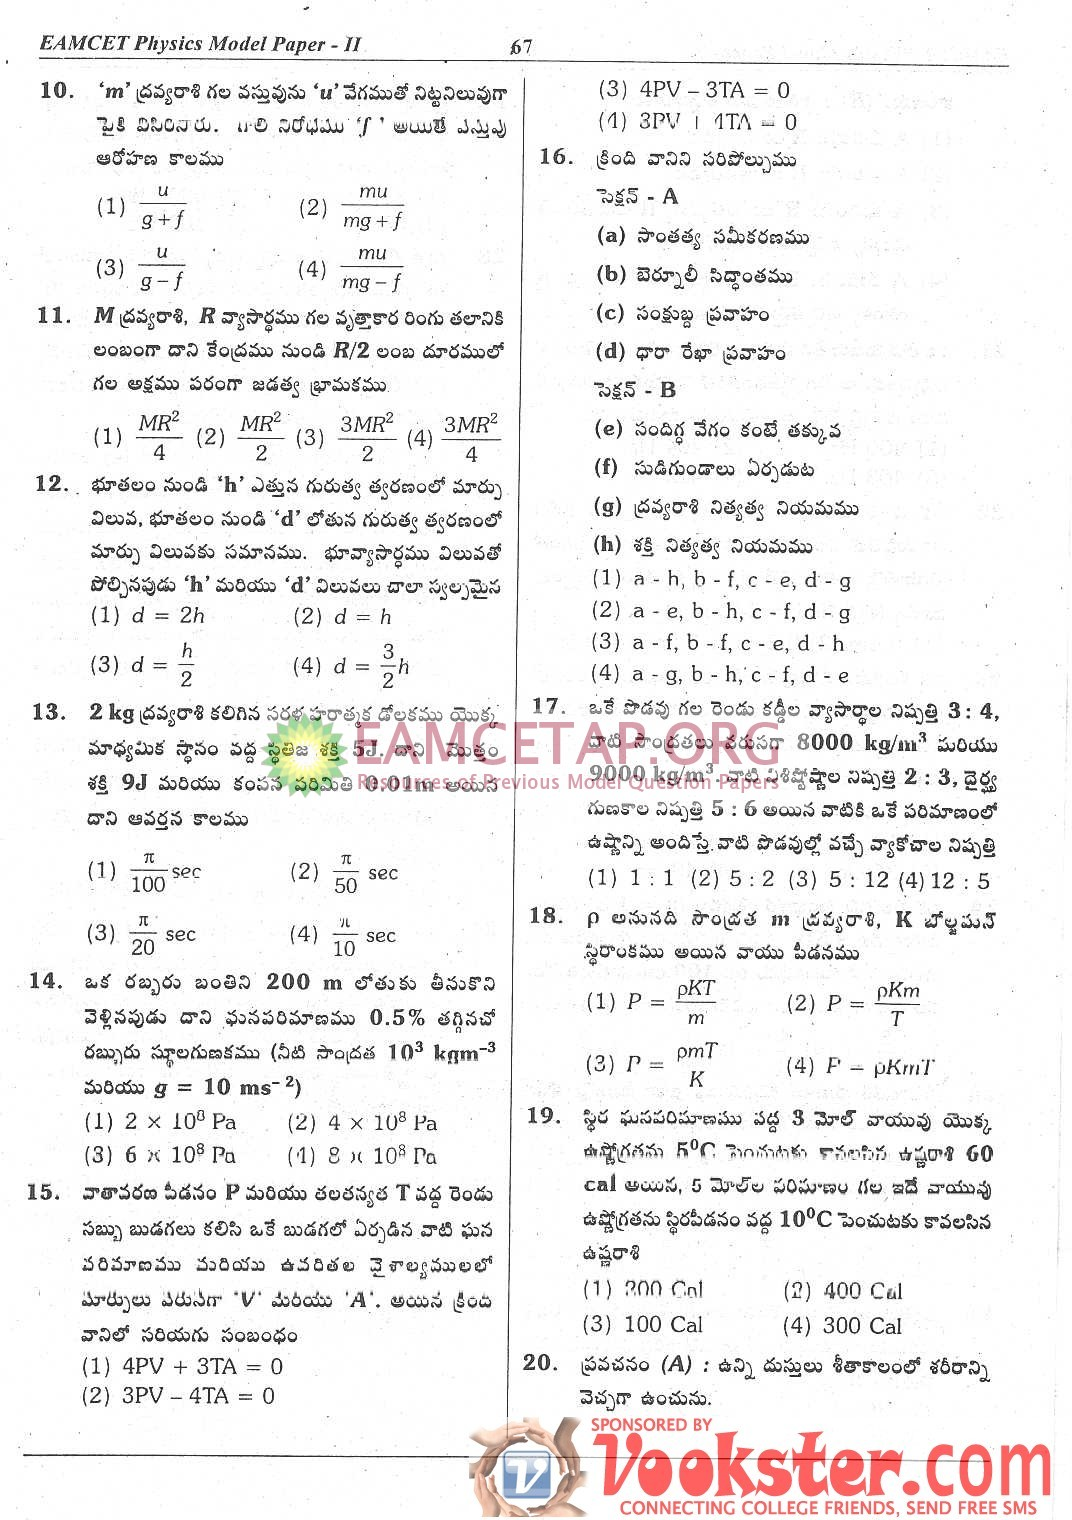 Physics papers online - Research paper Example - August 2019